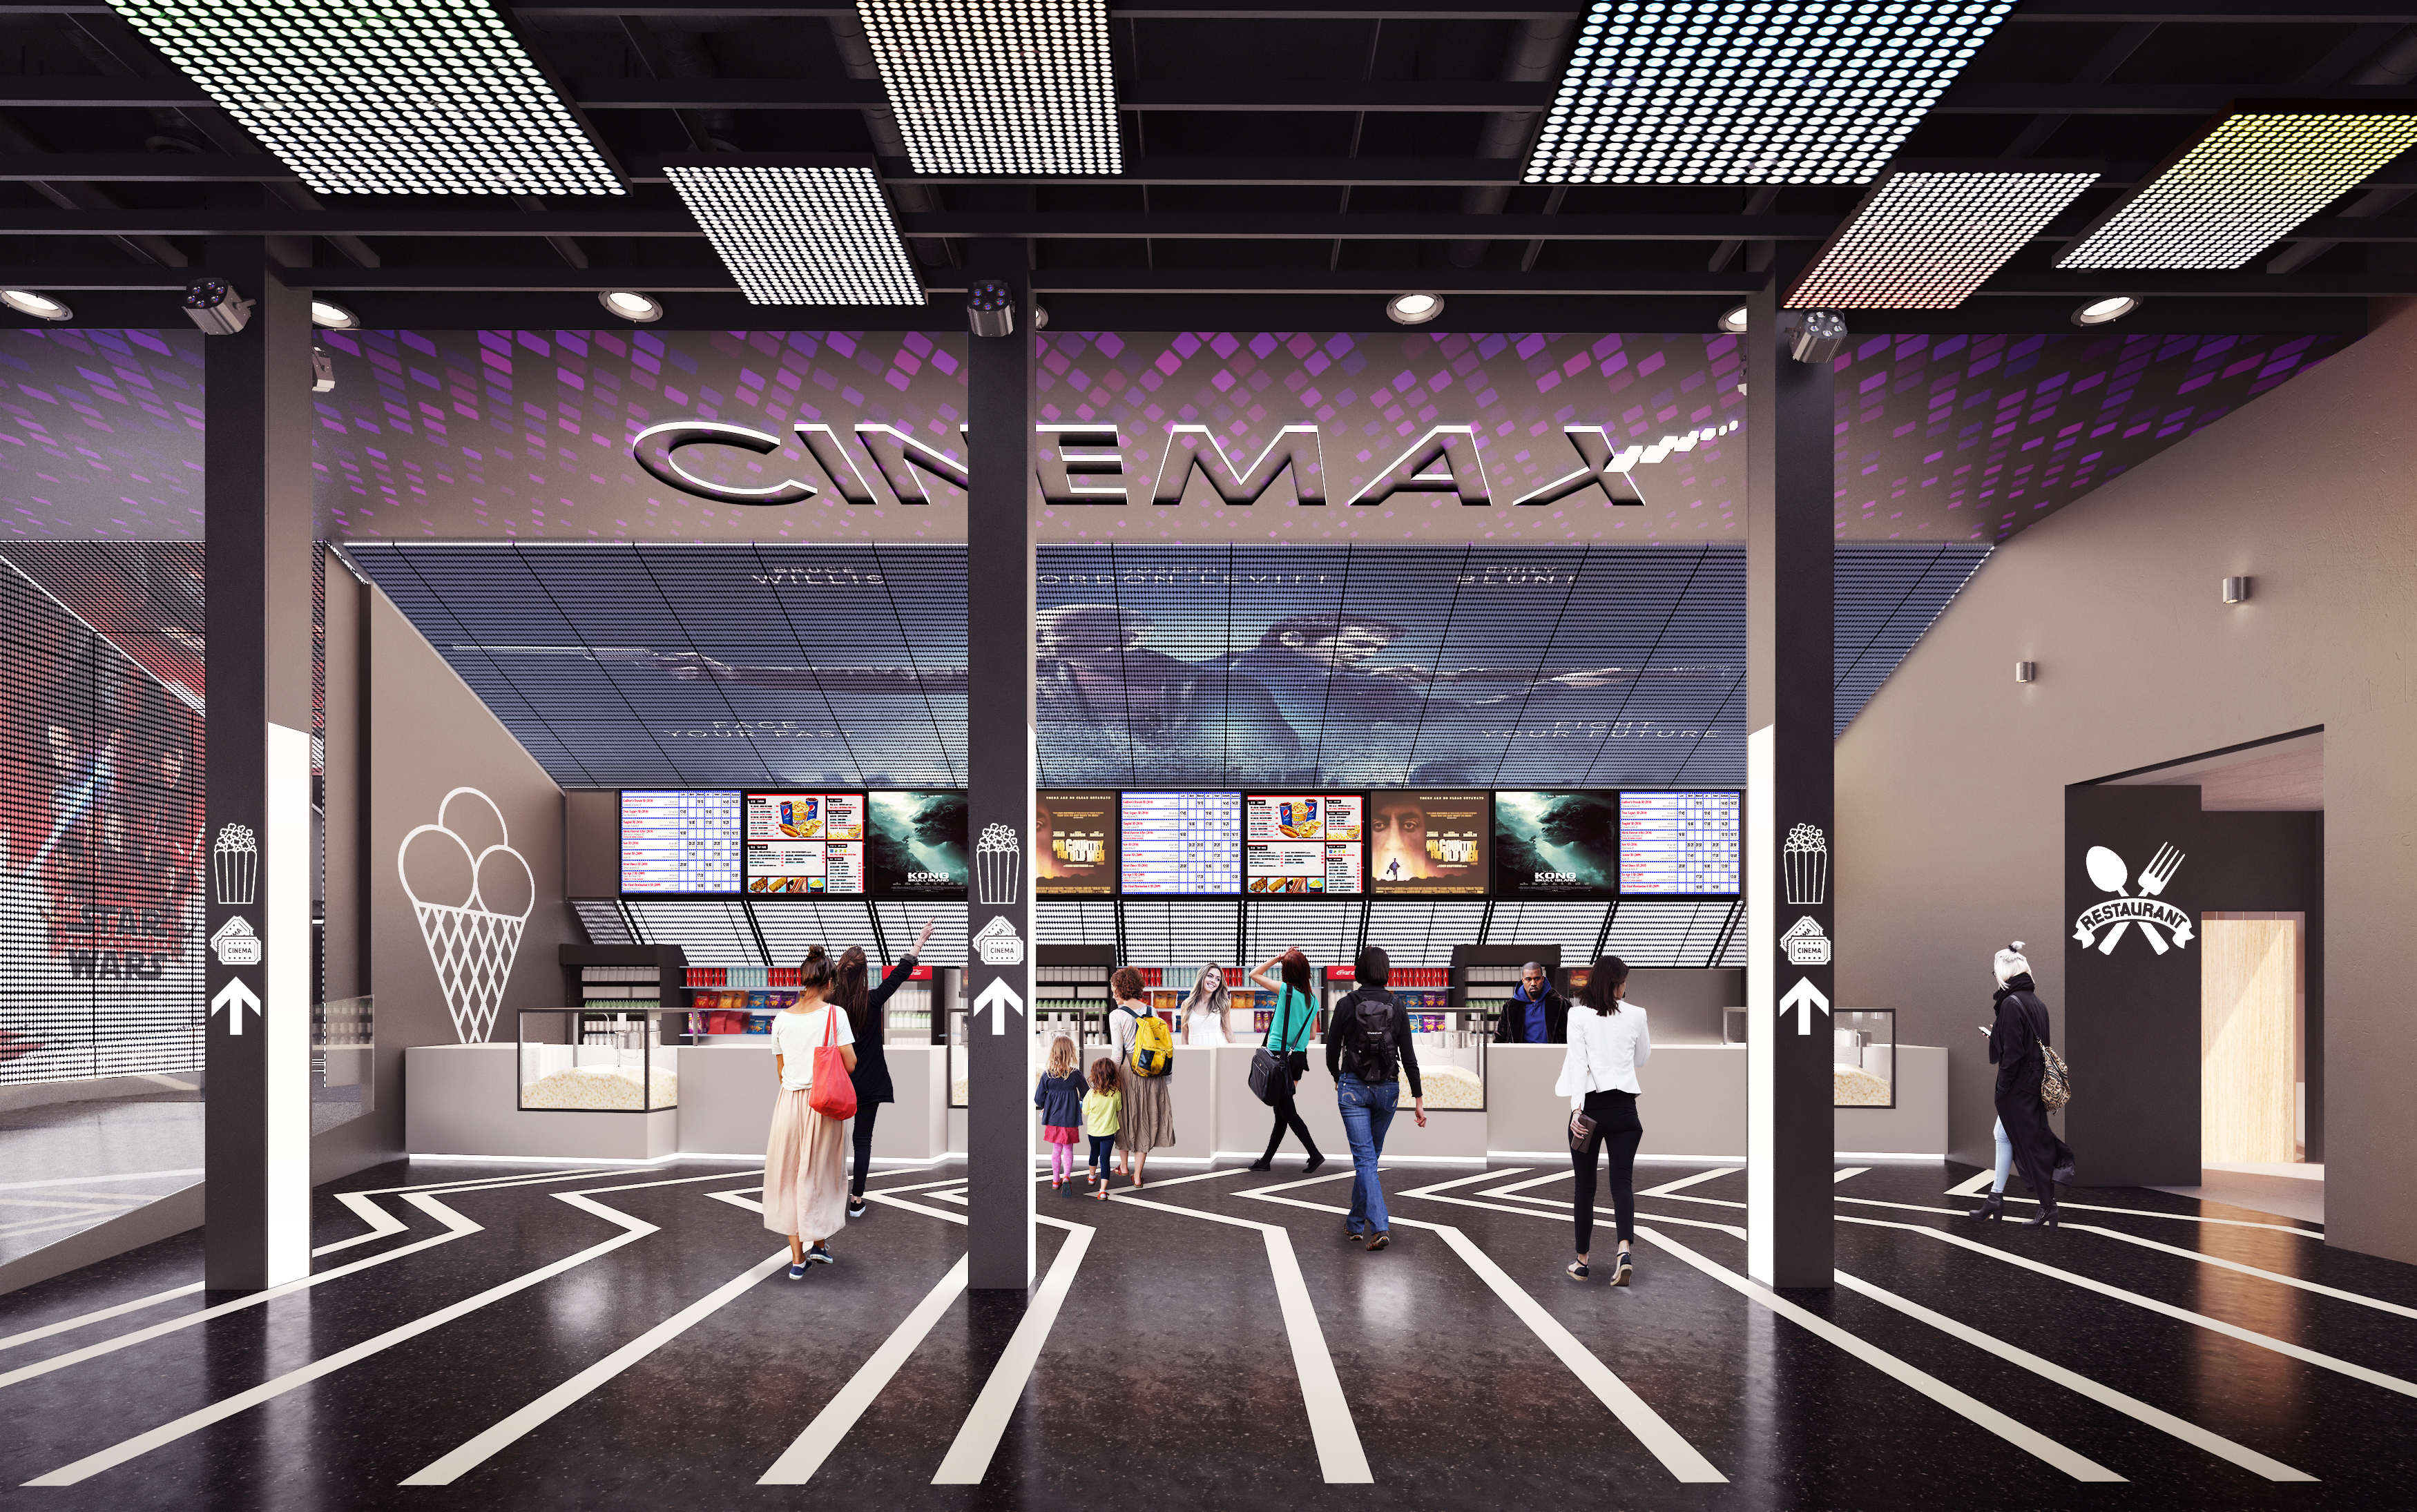 Cinemax chooses Cumulus to build its first cinema in Veranda Mall, Bucharest image